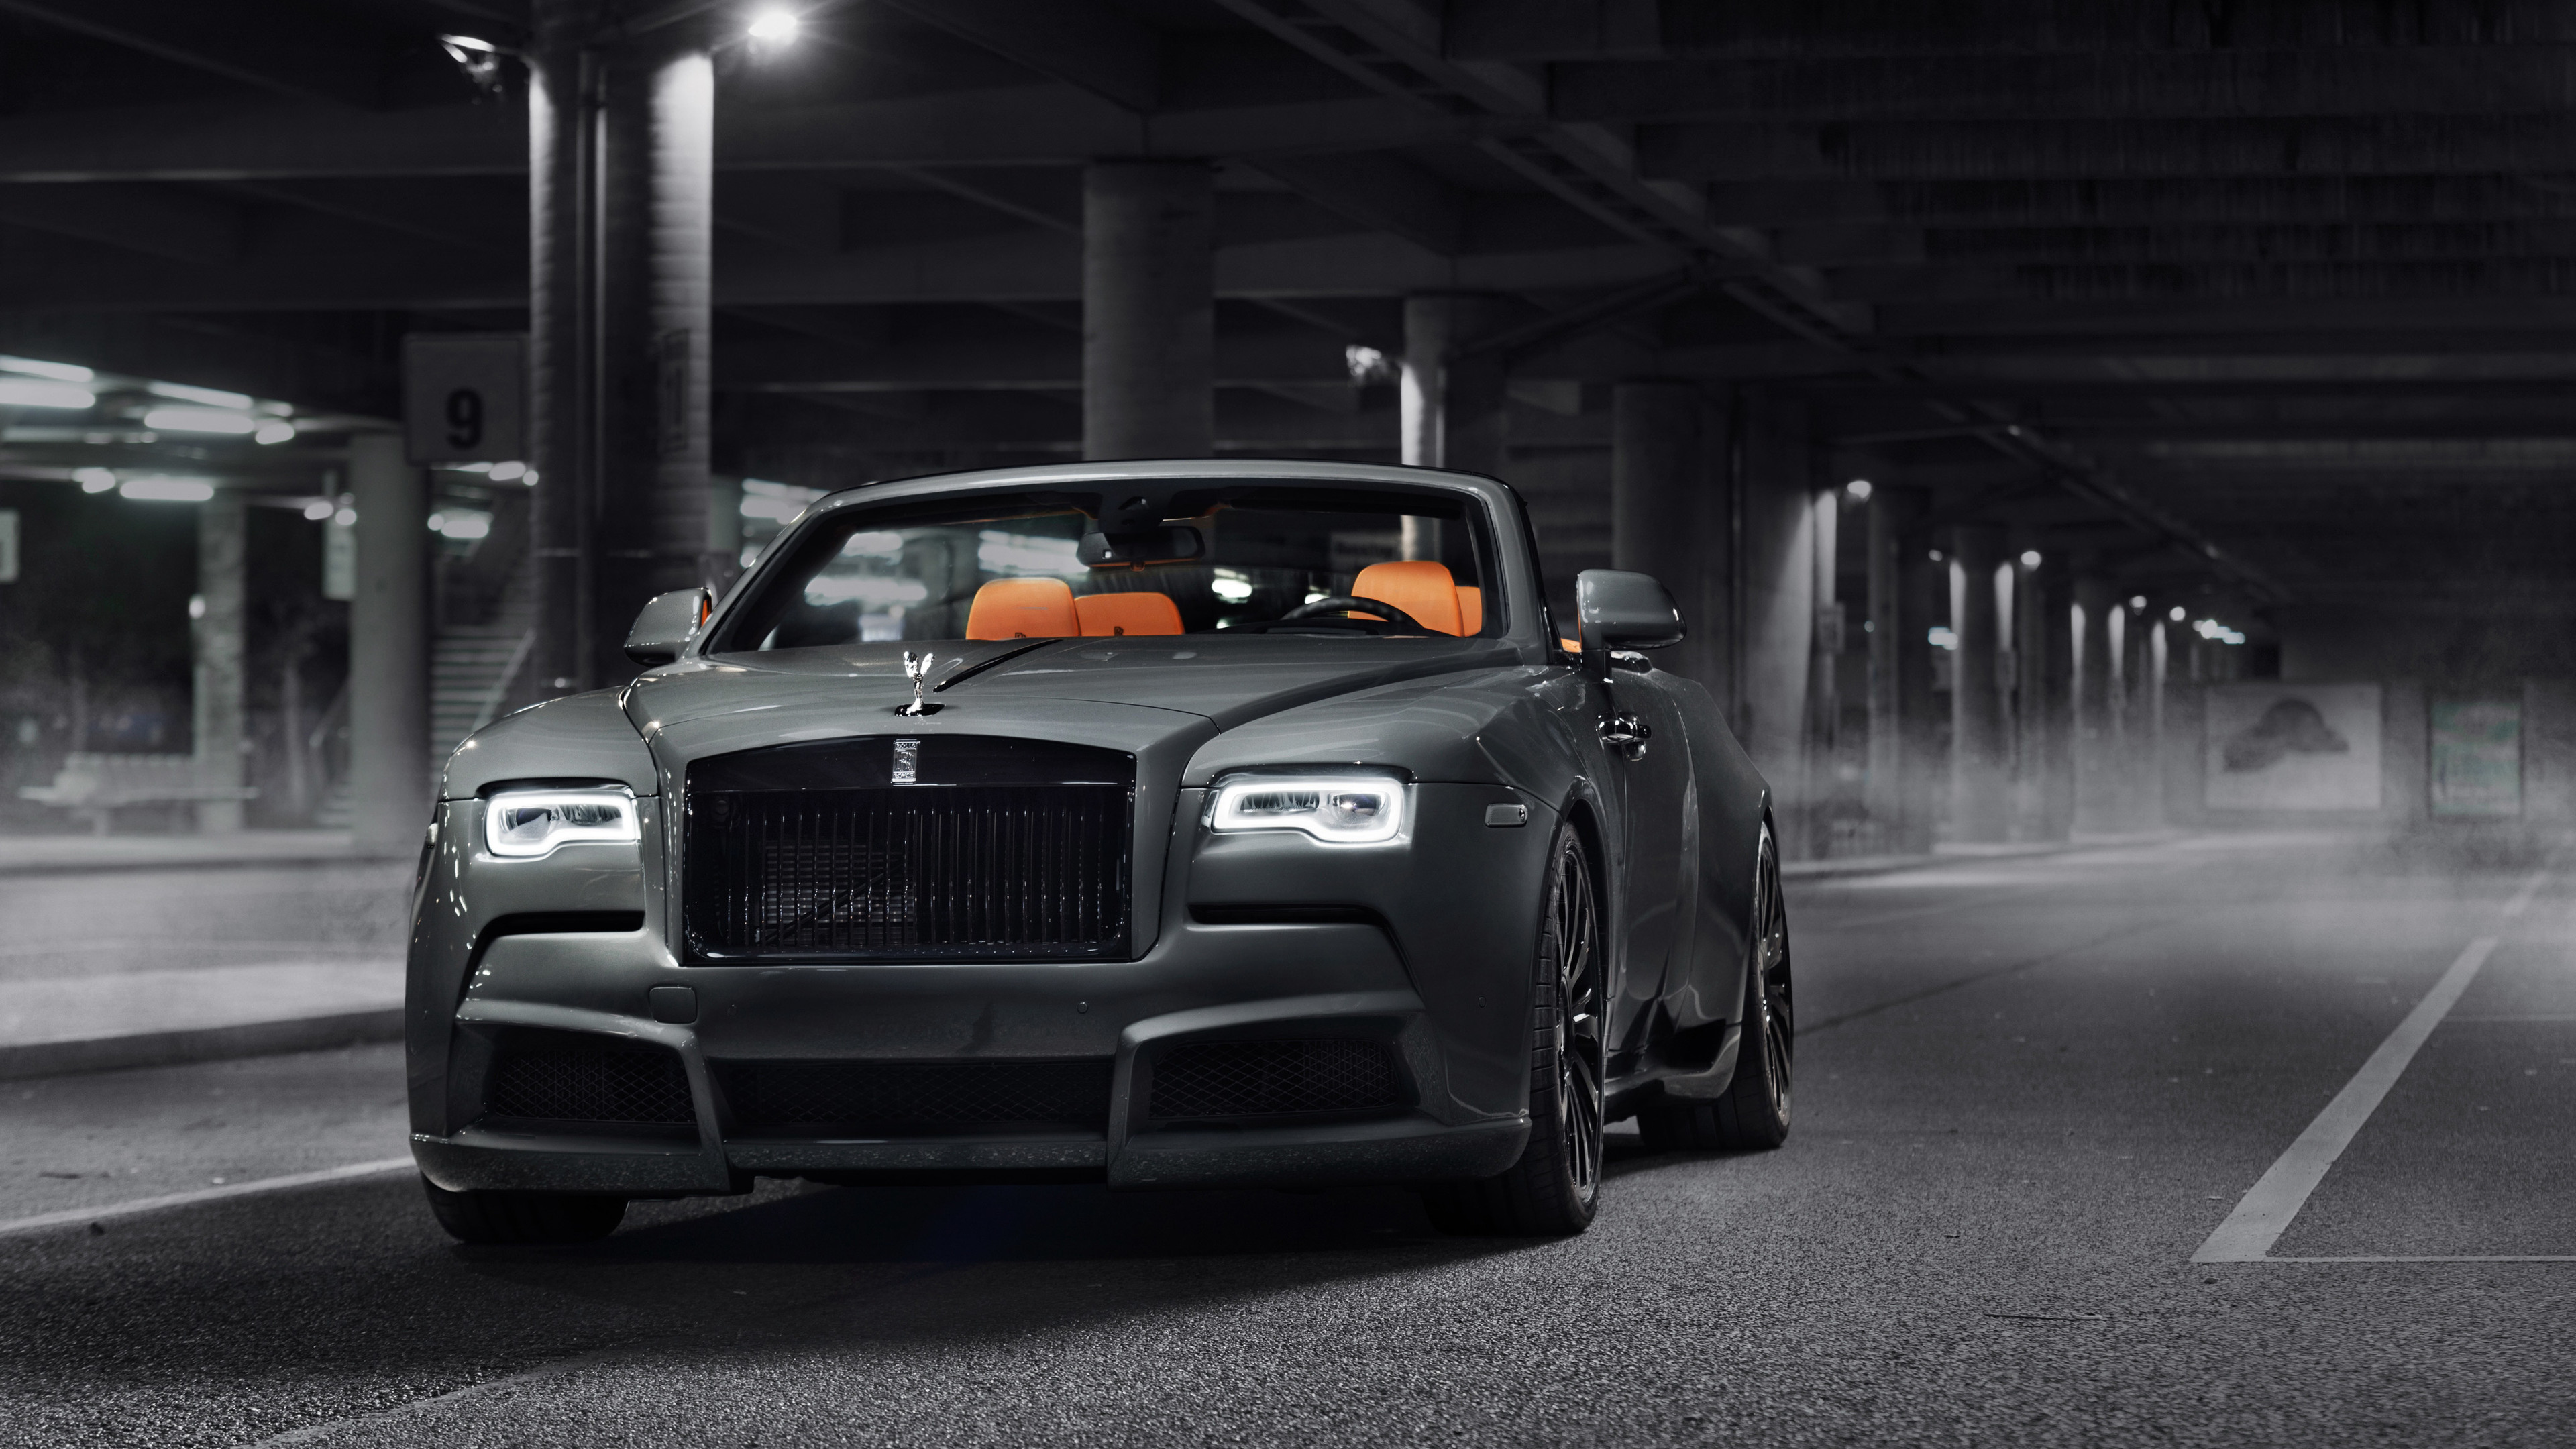 spofec rolls royce dawn overdose 2017 front 1539108021 - Spofec Rolls Royce Dawn Overdose 2017 Front - rolls royce wallpapers, rolls royce dawn overdose wallpapers, hd-wallpapers, cars wallpapers, 4k-wallpapers, 2017 cars wallpapers